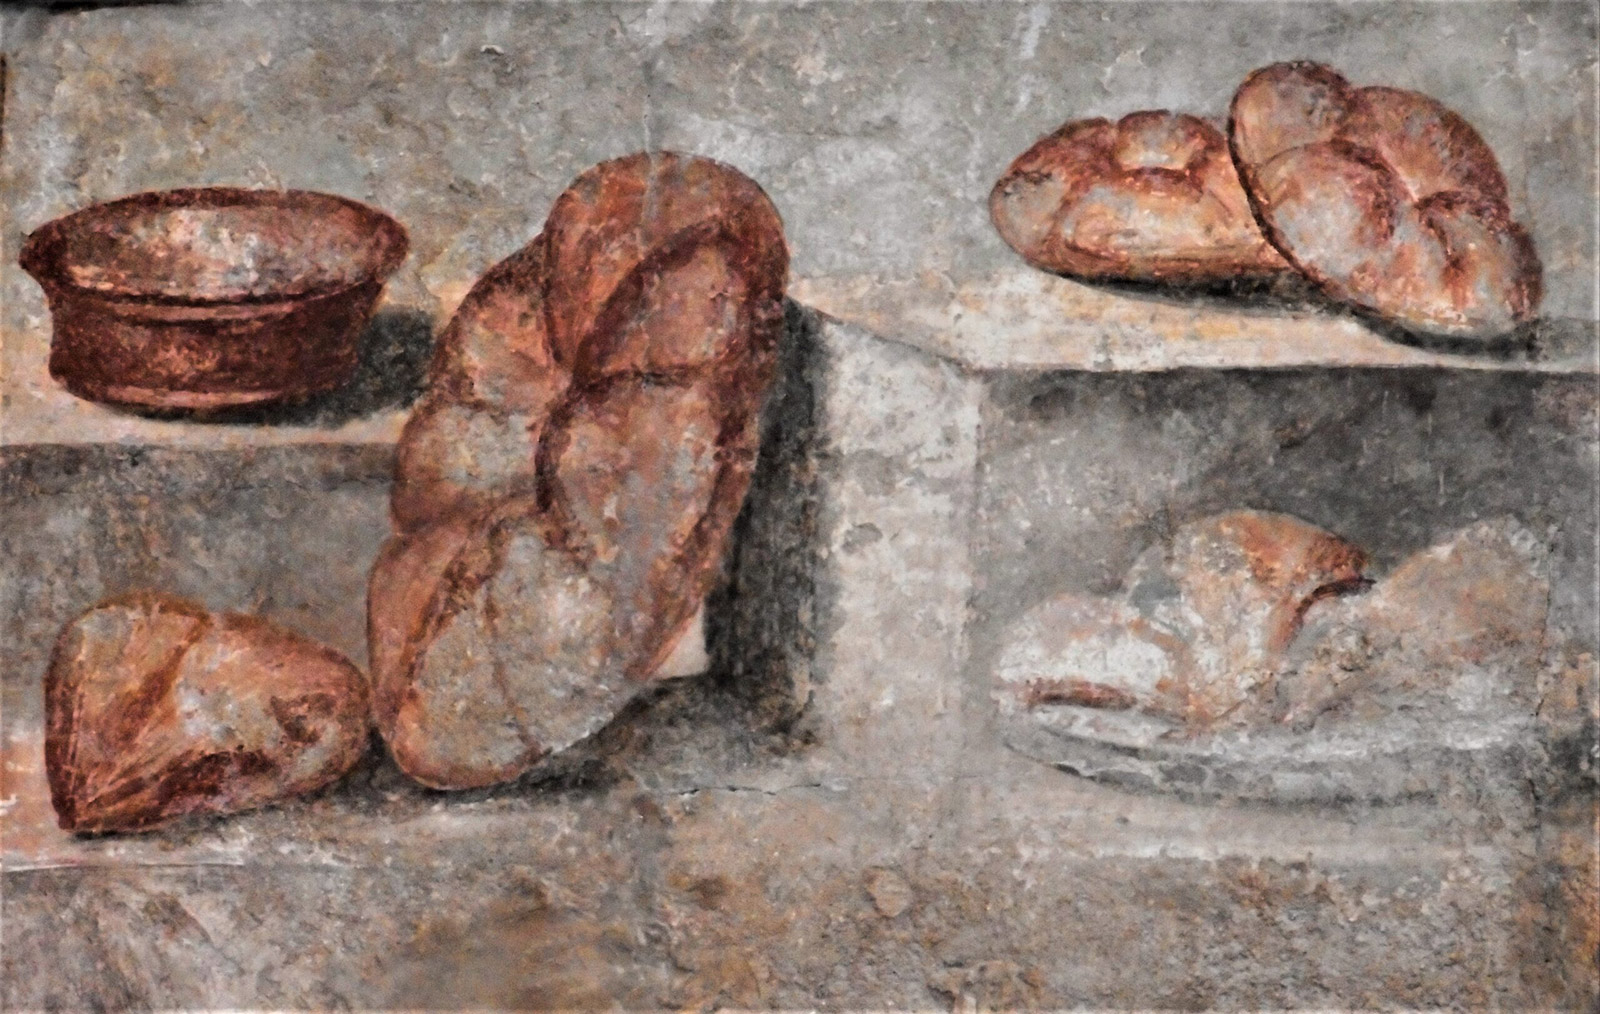 A pastel fresco, with brown round loaves of bread that sit on a shelf